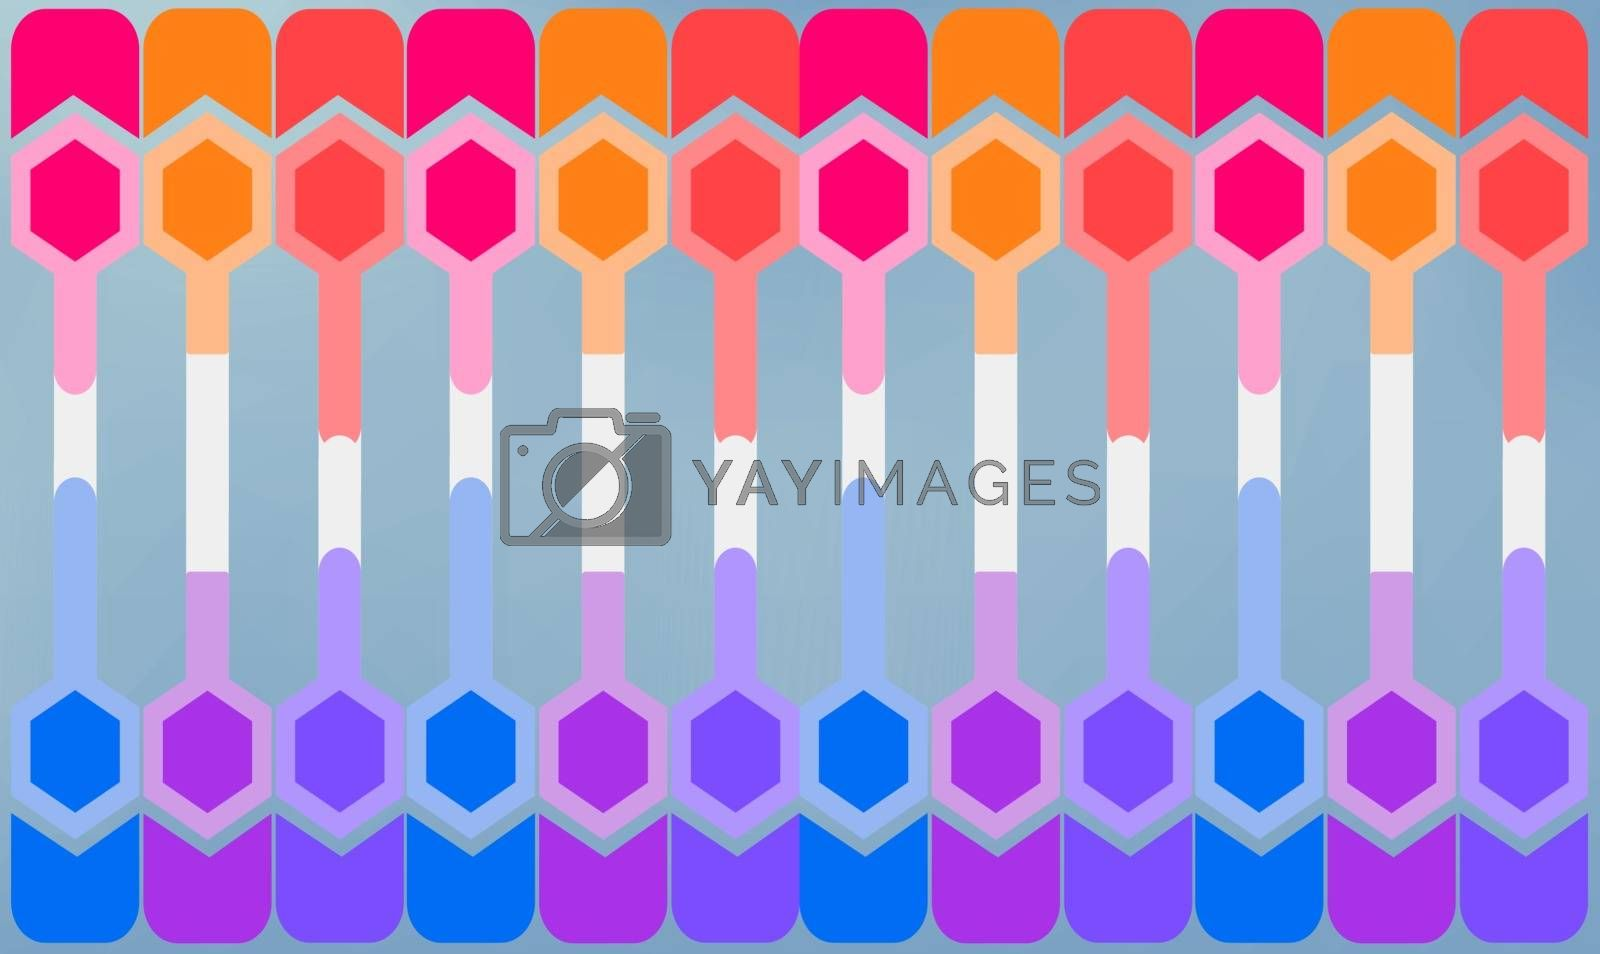 digital textile design of hexagon art on abstract background